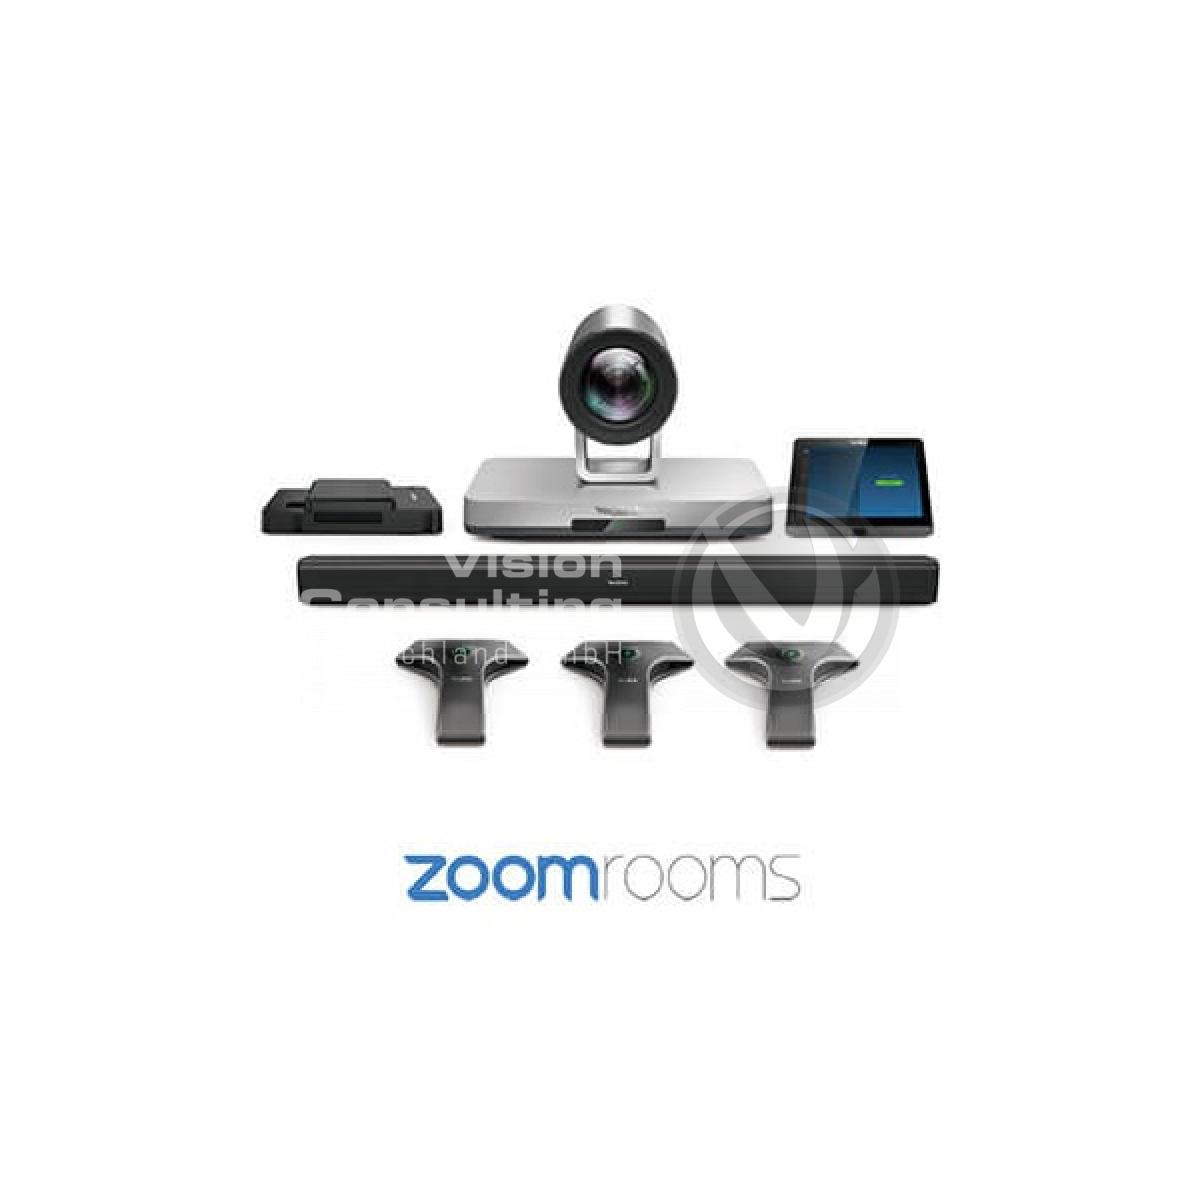 Yealink ZVC830 Zoom Rooms Kit